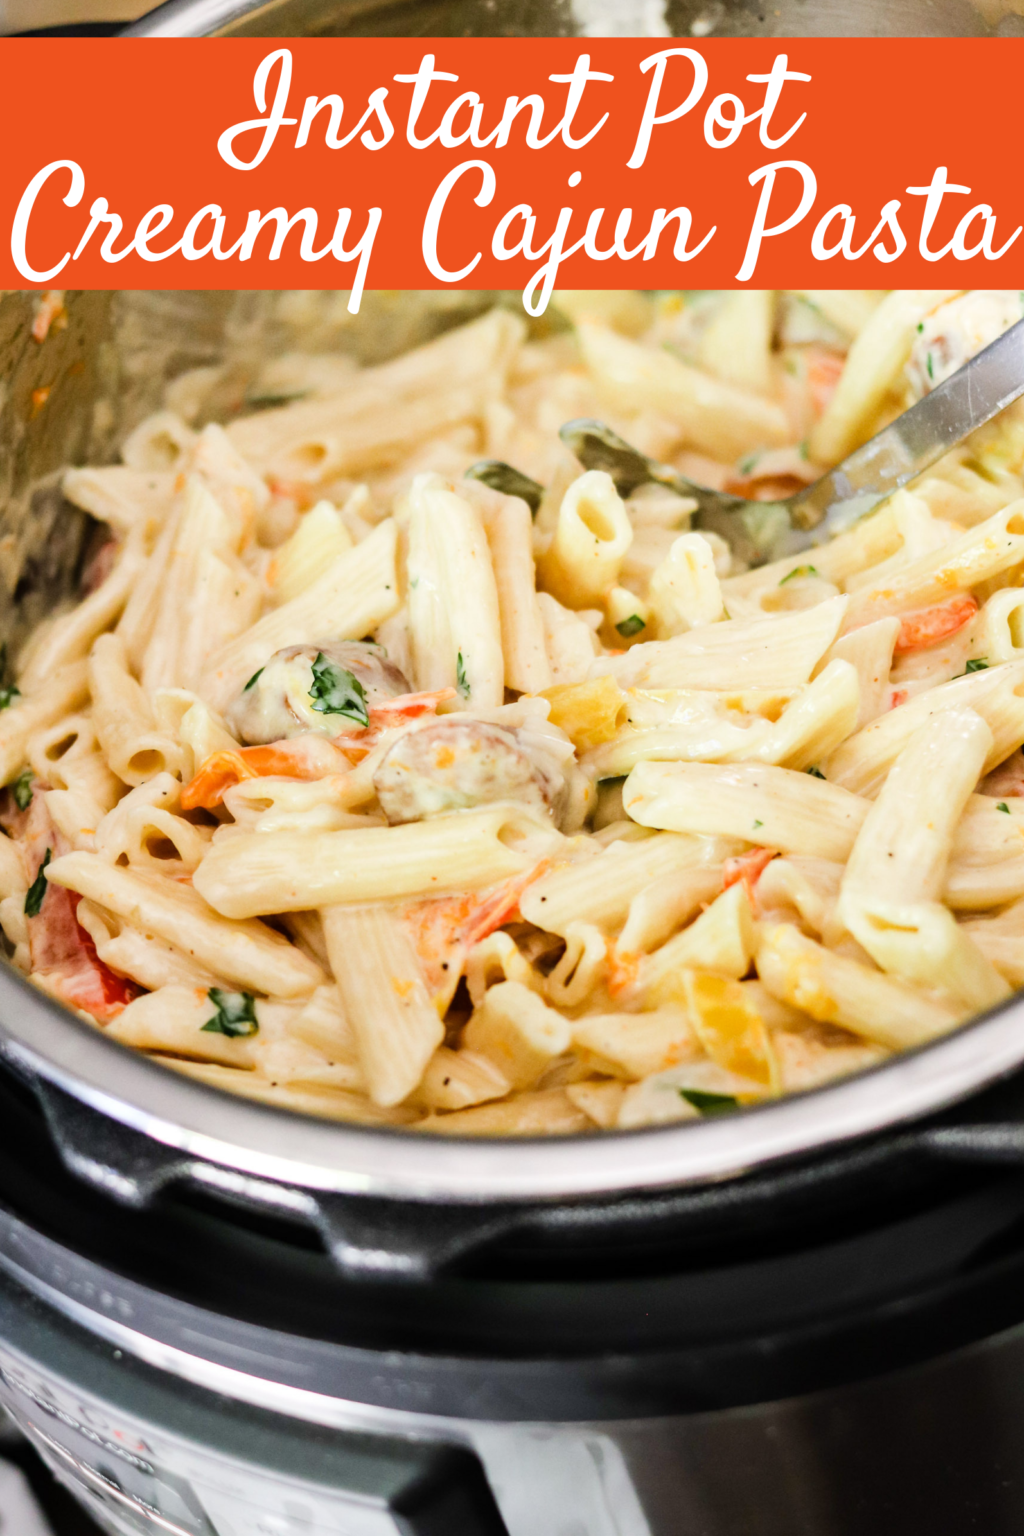 Instant Pot Creamy Cajun Pasta is filled with spicy smoked sausage and bell peppers, then drenched in a homemade cheesy sauce! Dinner is ready in minutes!